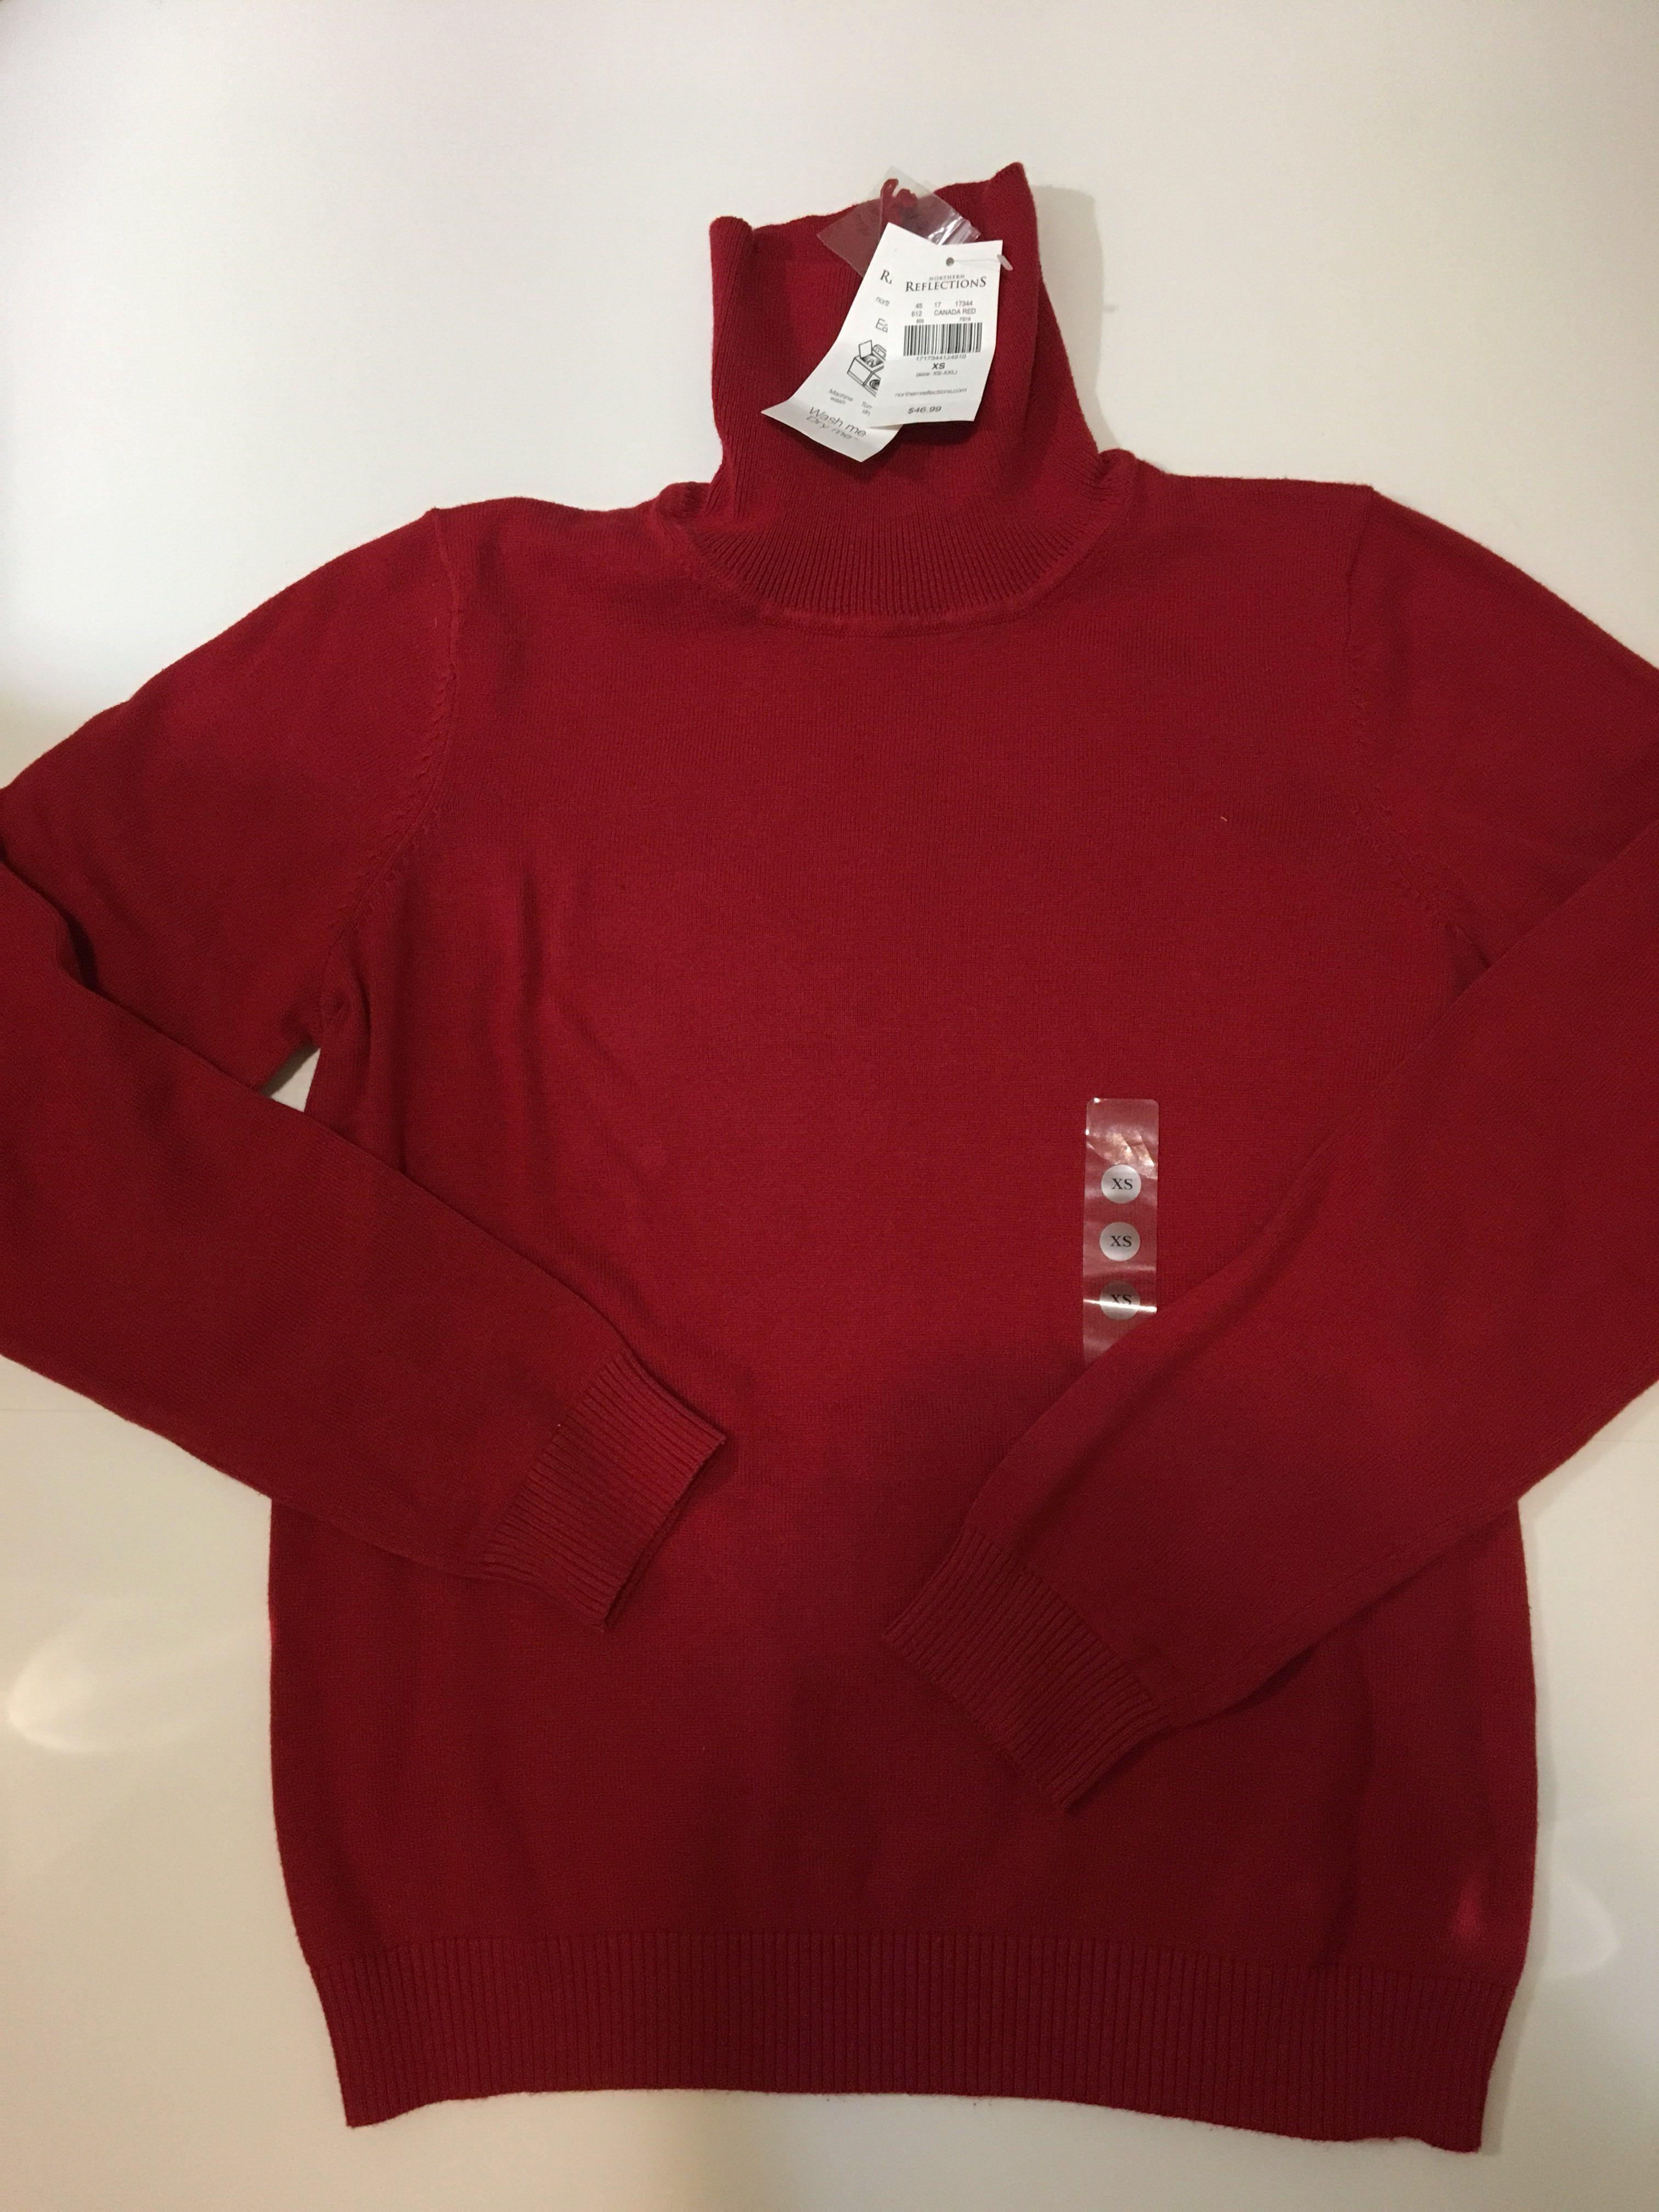 Brand new with tags Northern Reflection turtleneck red sweater